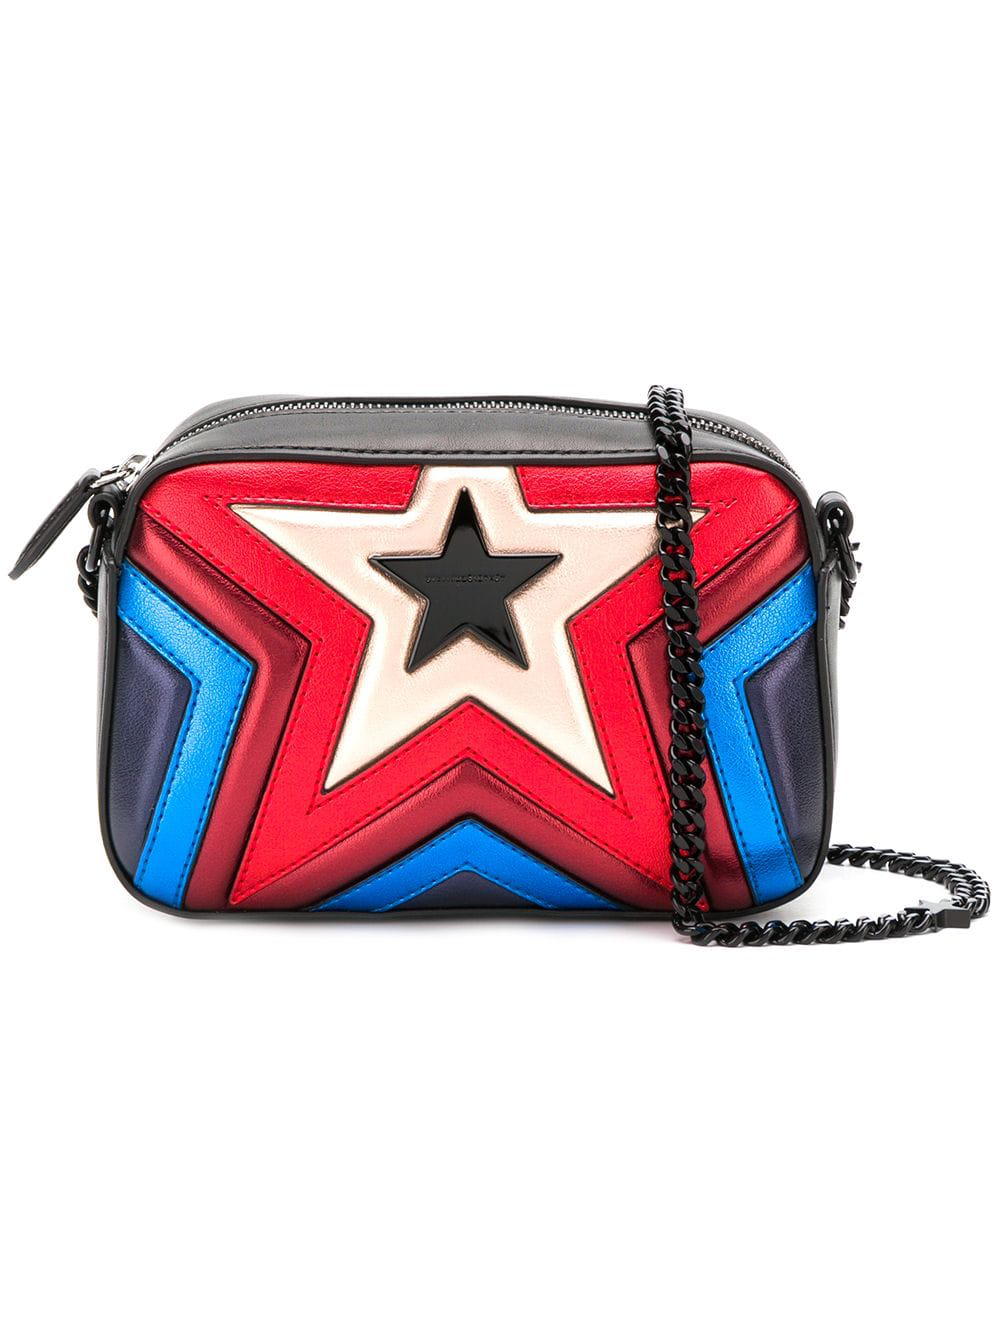 Stella Mccartney Multicoloured Star Quilted Vegan Leather Bag ... b6a706920fa22